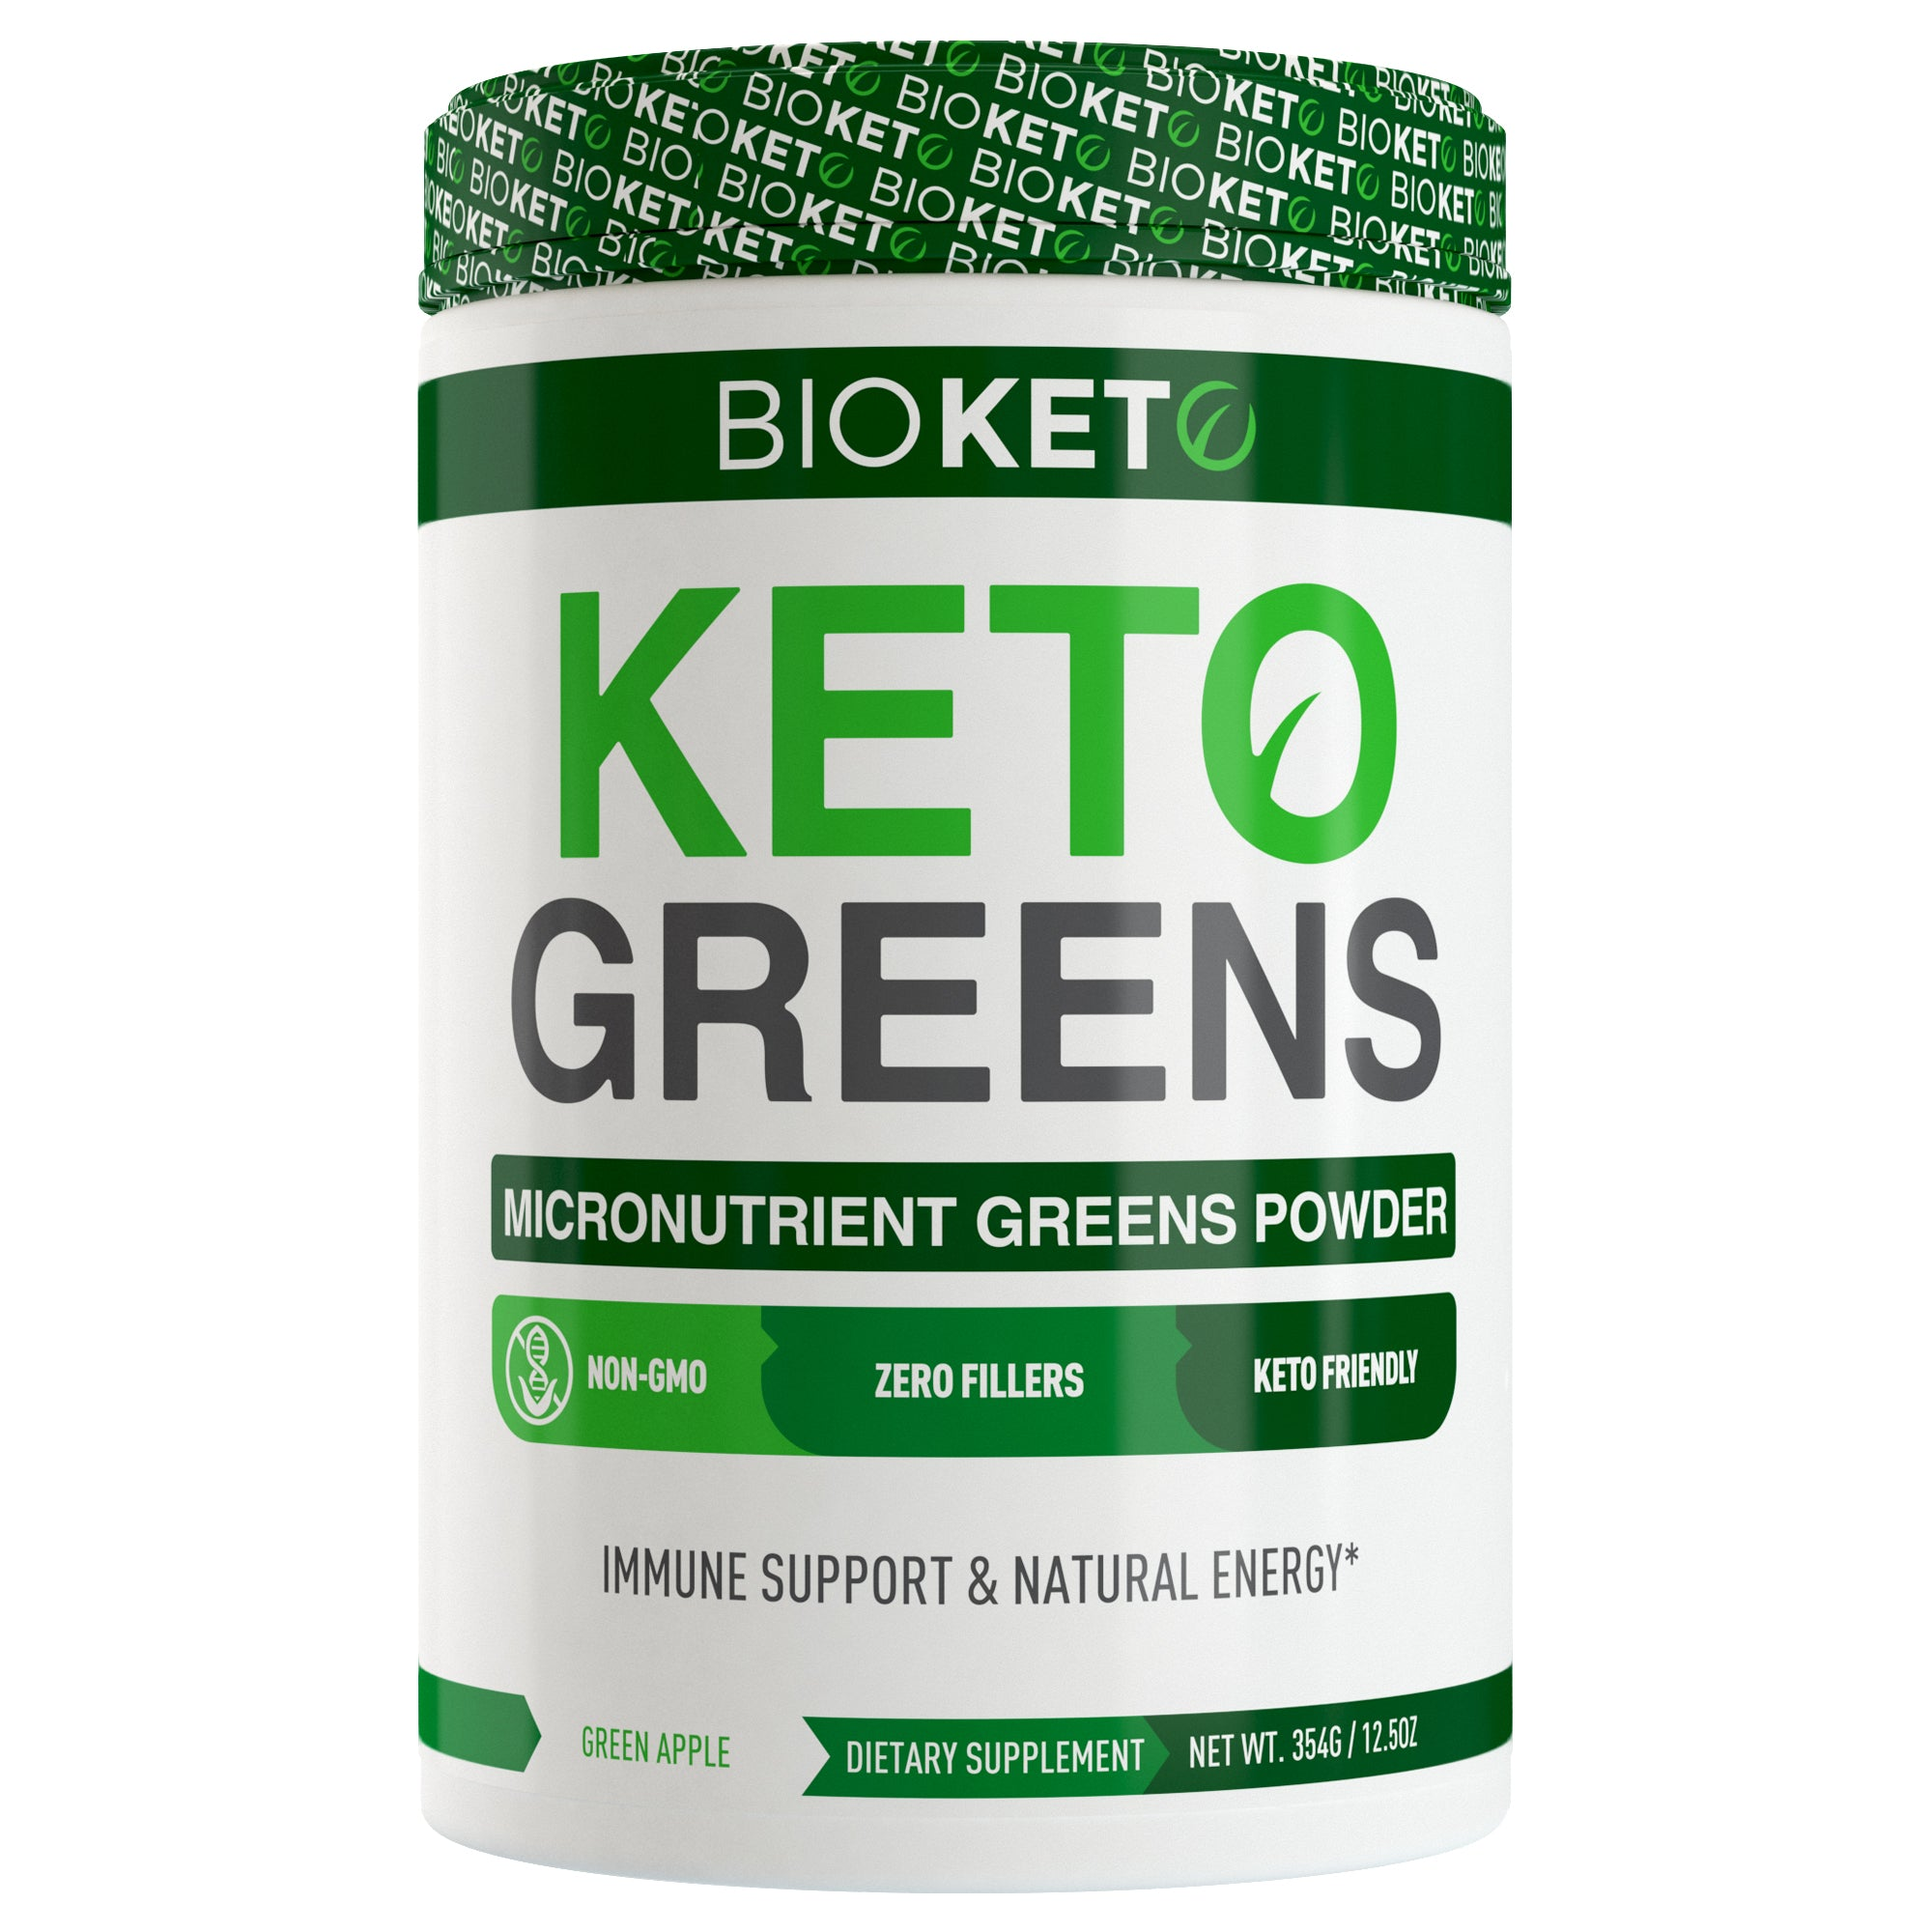 KETO GREENS - Micronutrient Greens Powder with goMCT®